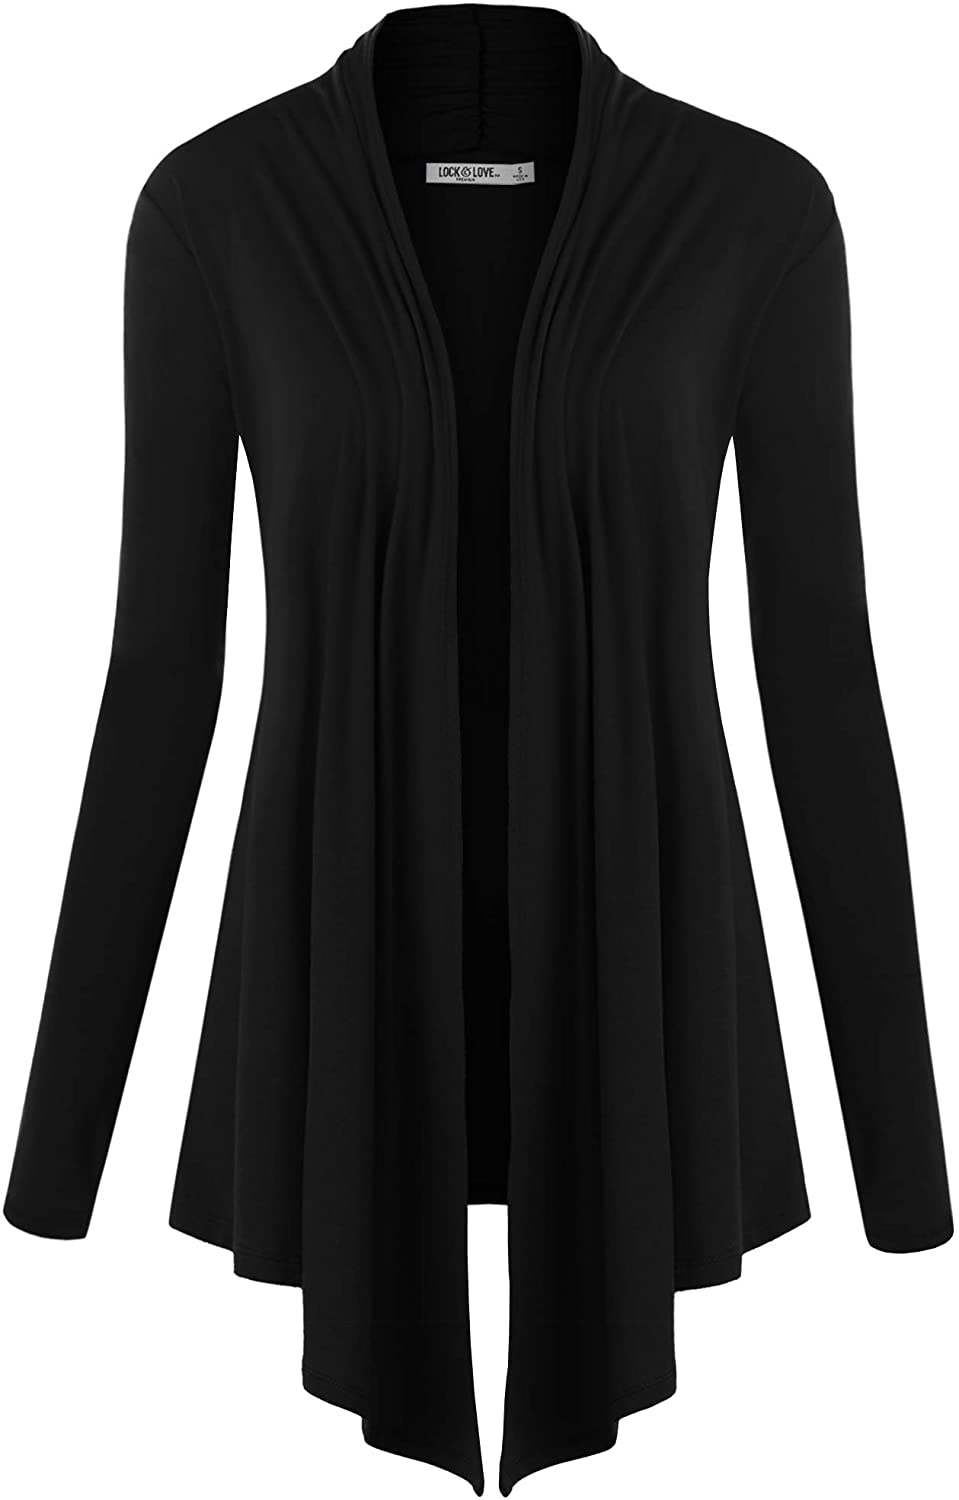 Lock and Love Women's Basic Draped Long Sleeve Open Front Knit Cardigan S - XXXL Plus Size